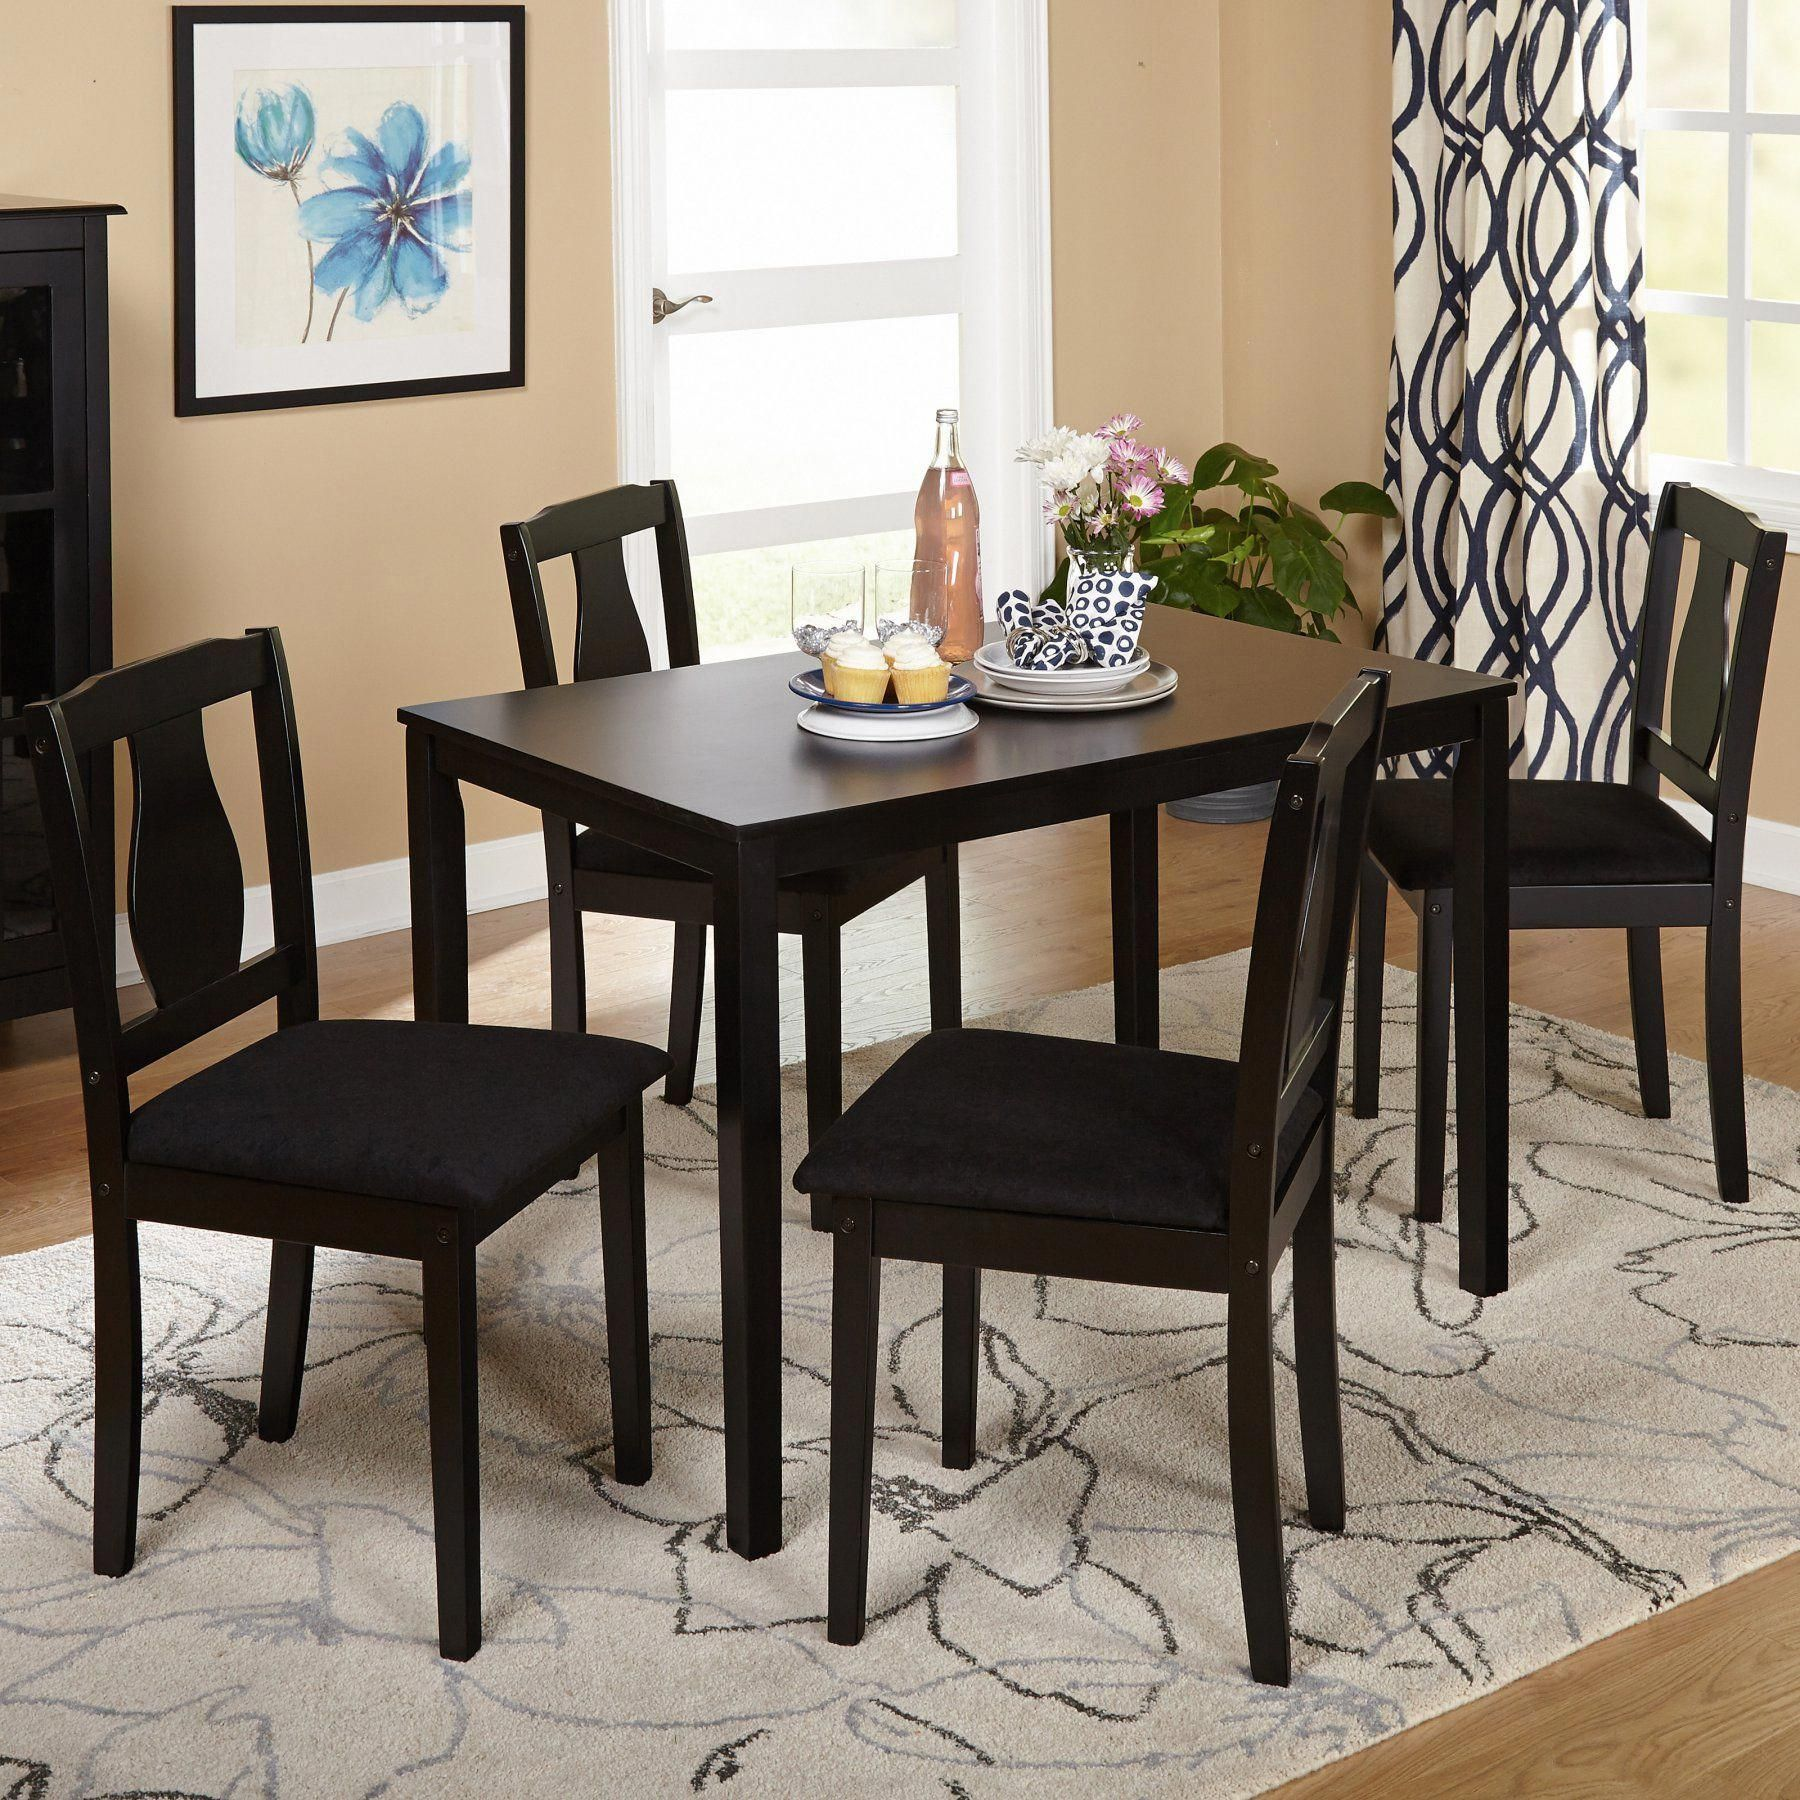 Target Marketing Systems Lizzy 5 Piece Dining Table Set 49015blk